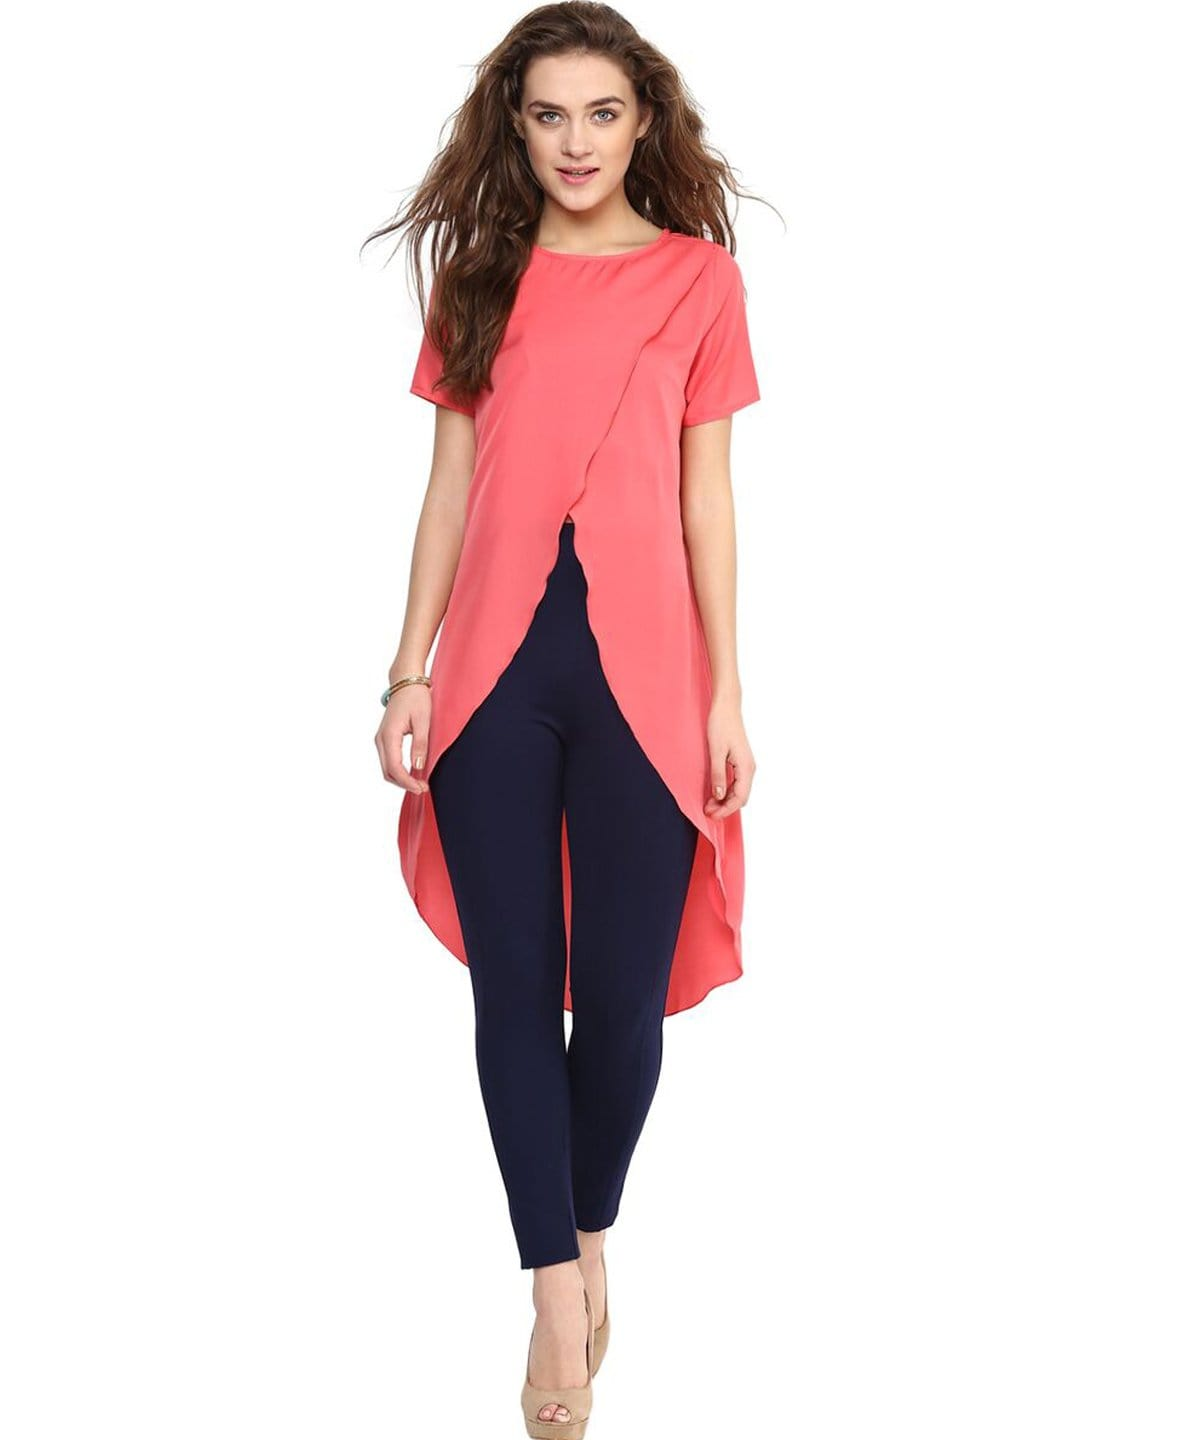 Solid Pink Front Cutout Tunic. FLAT 20% OFF